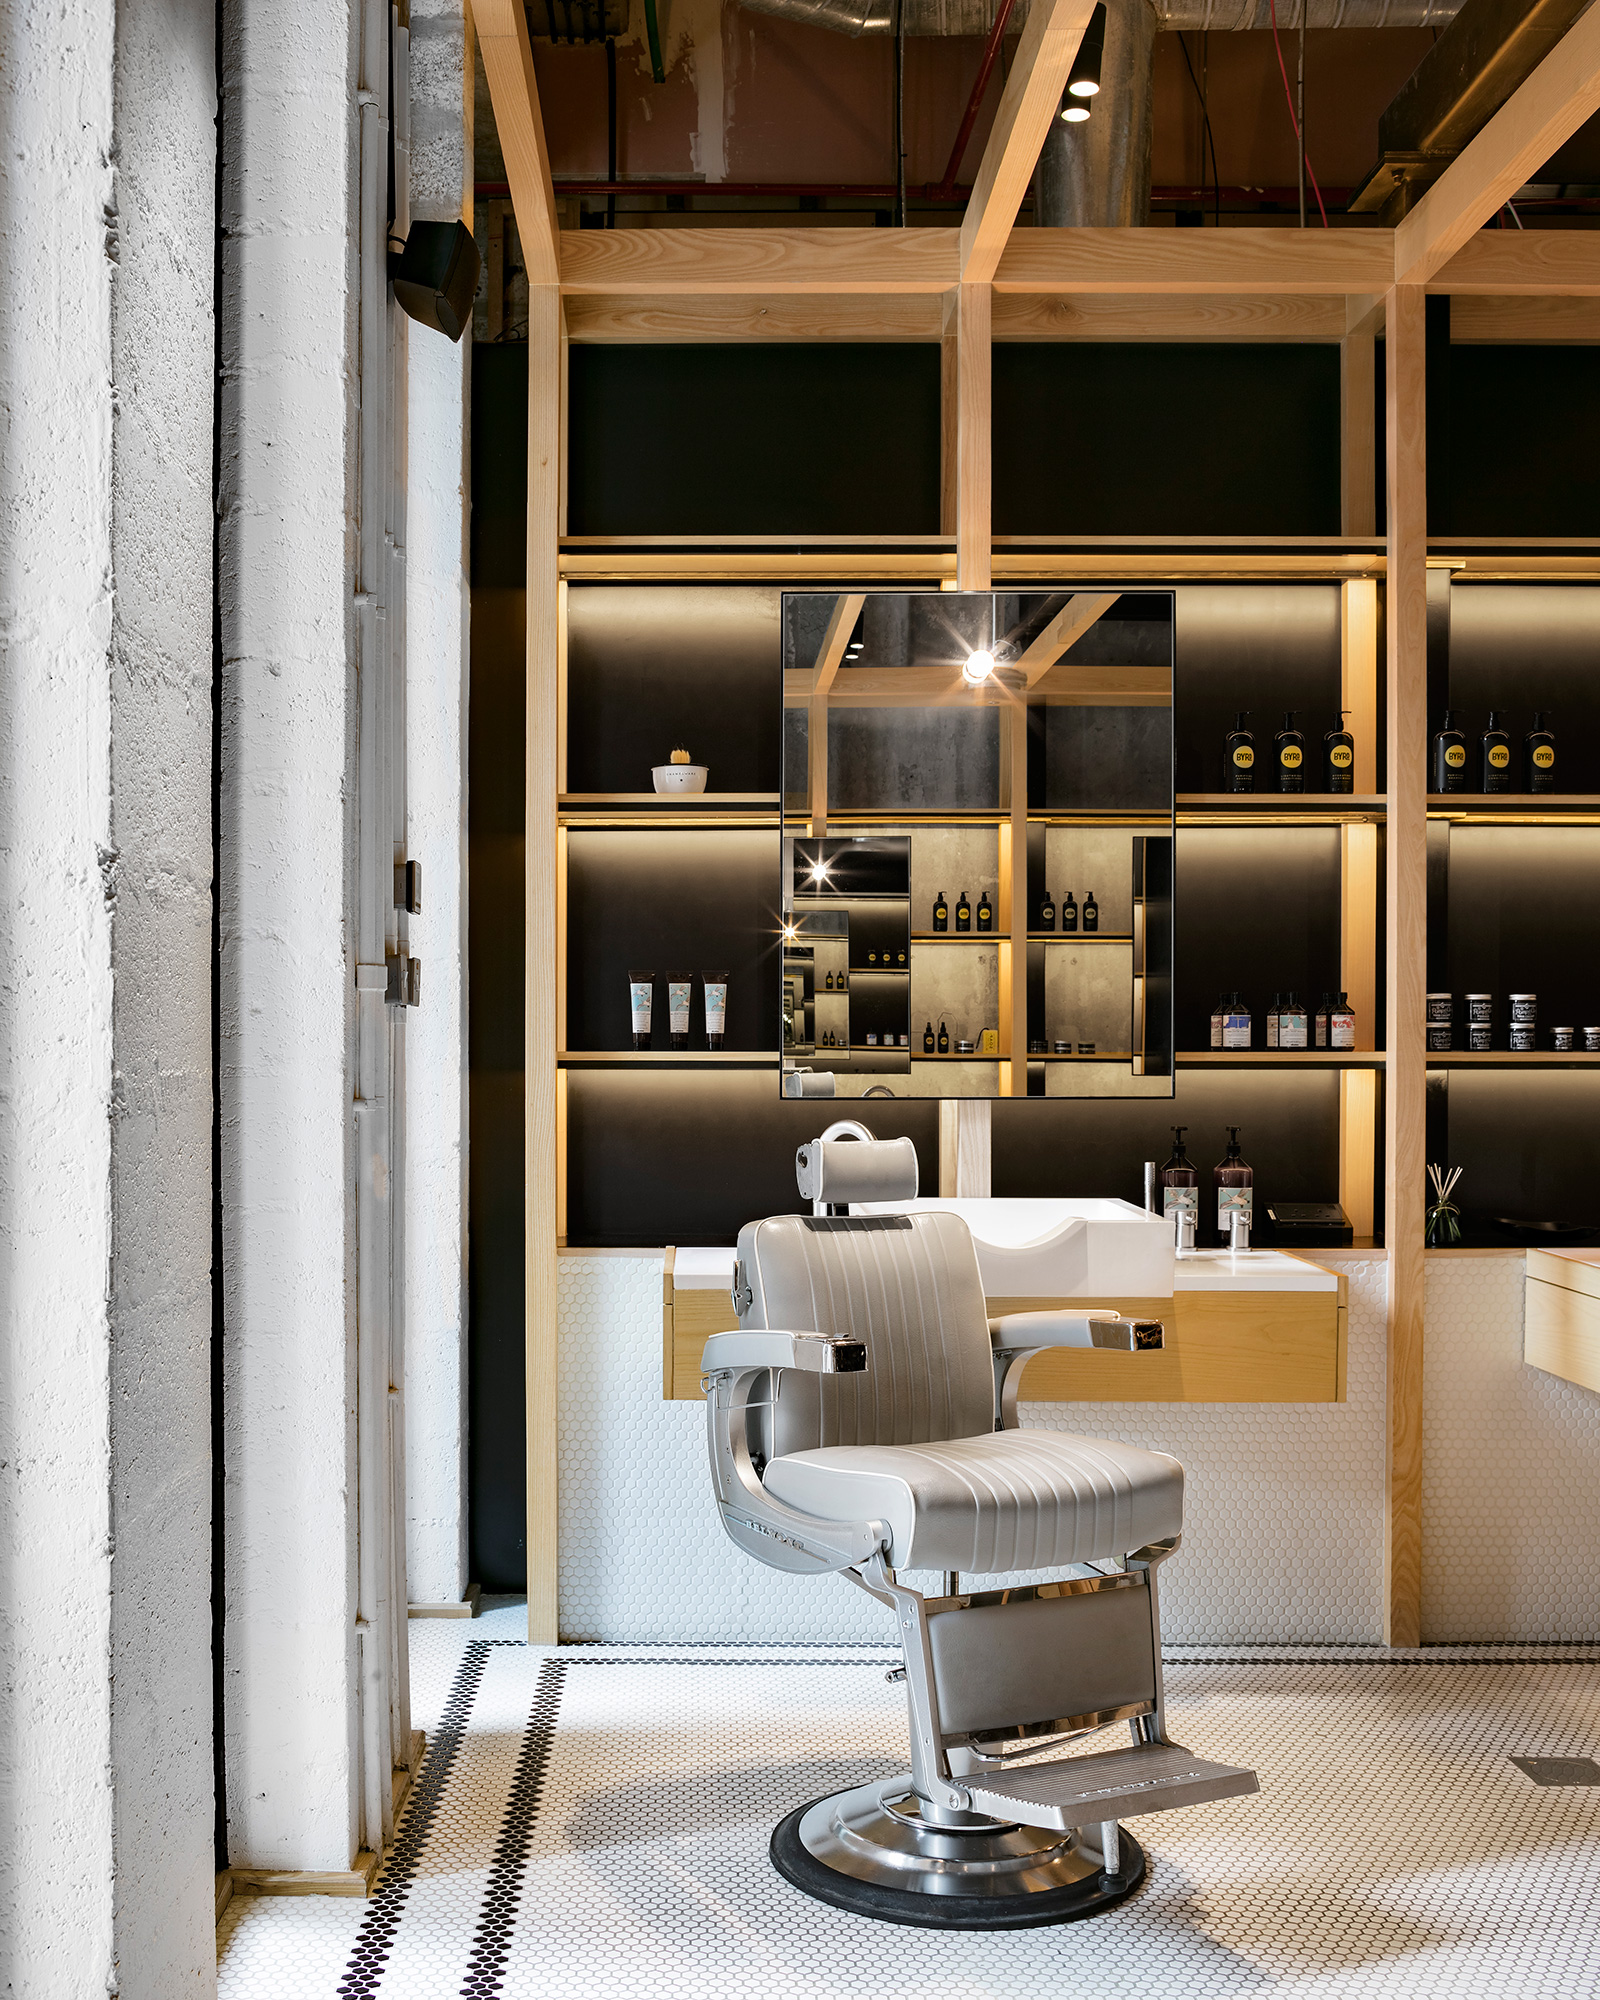 Heavy duty chairs at the barber shop| Akin at The Beach| Akin Barber and Shop| Anarchitect| STIR